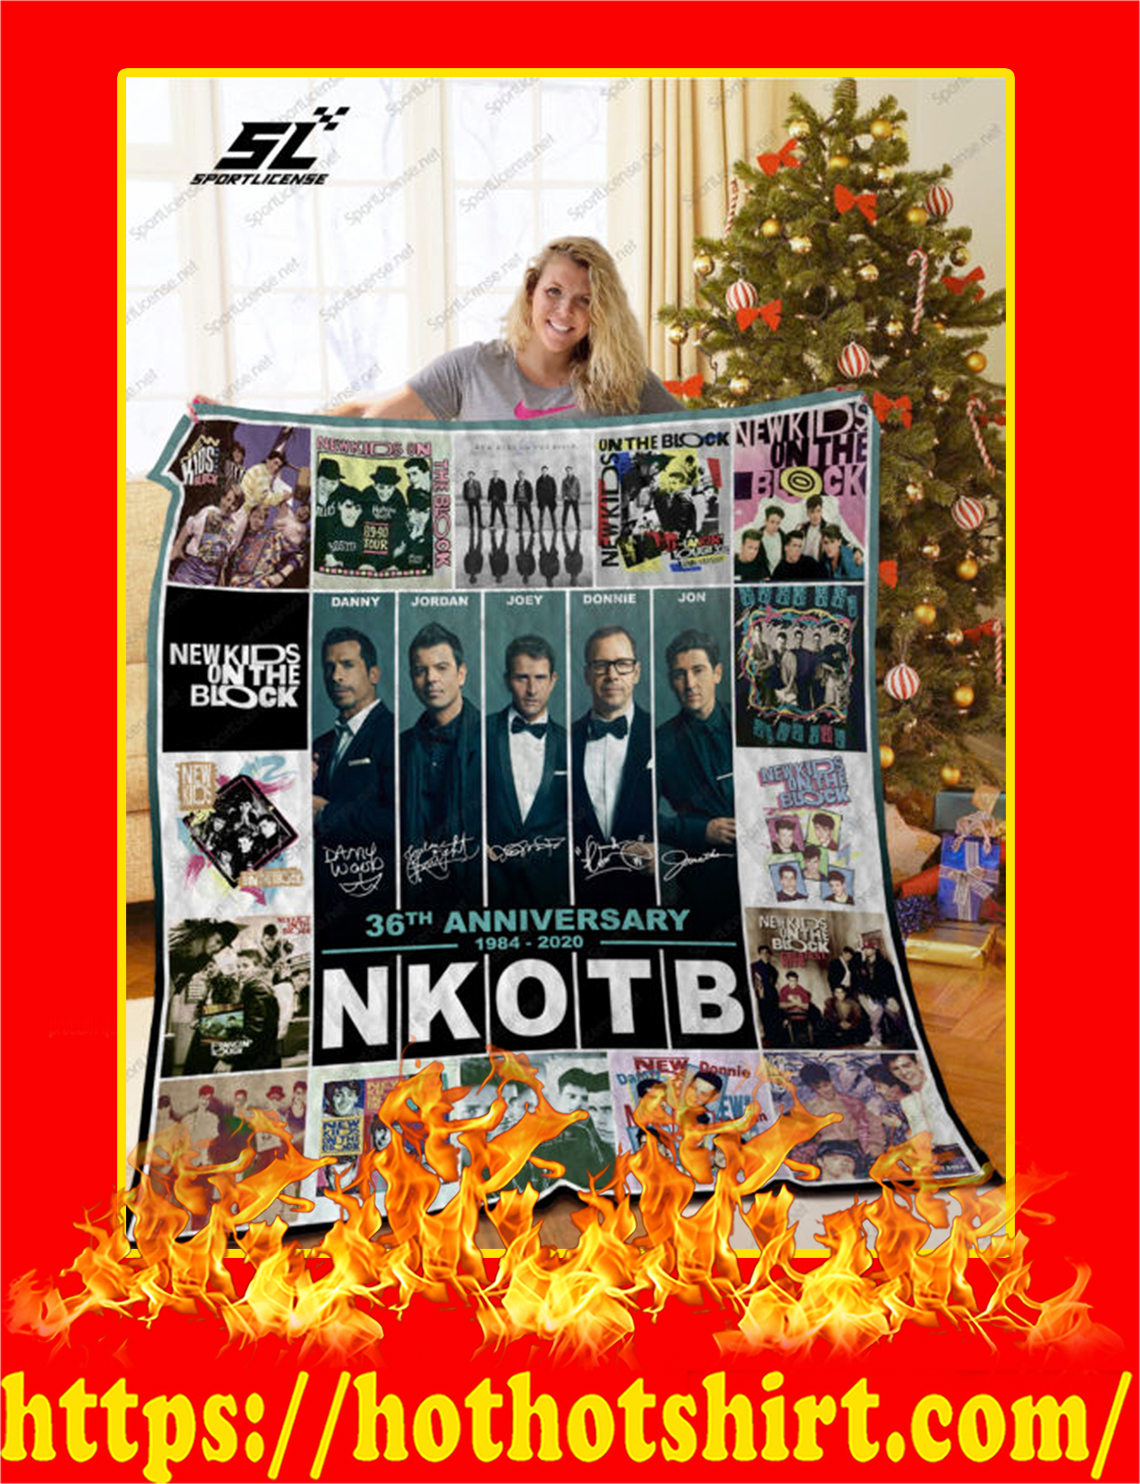 NKOTB 36th Anniversary 1984 2020 Quilt Blanket - super king